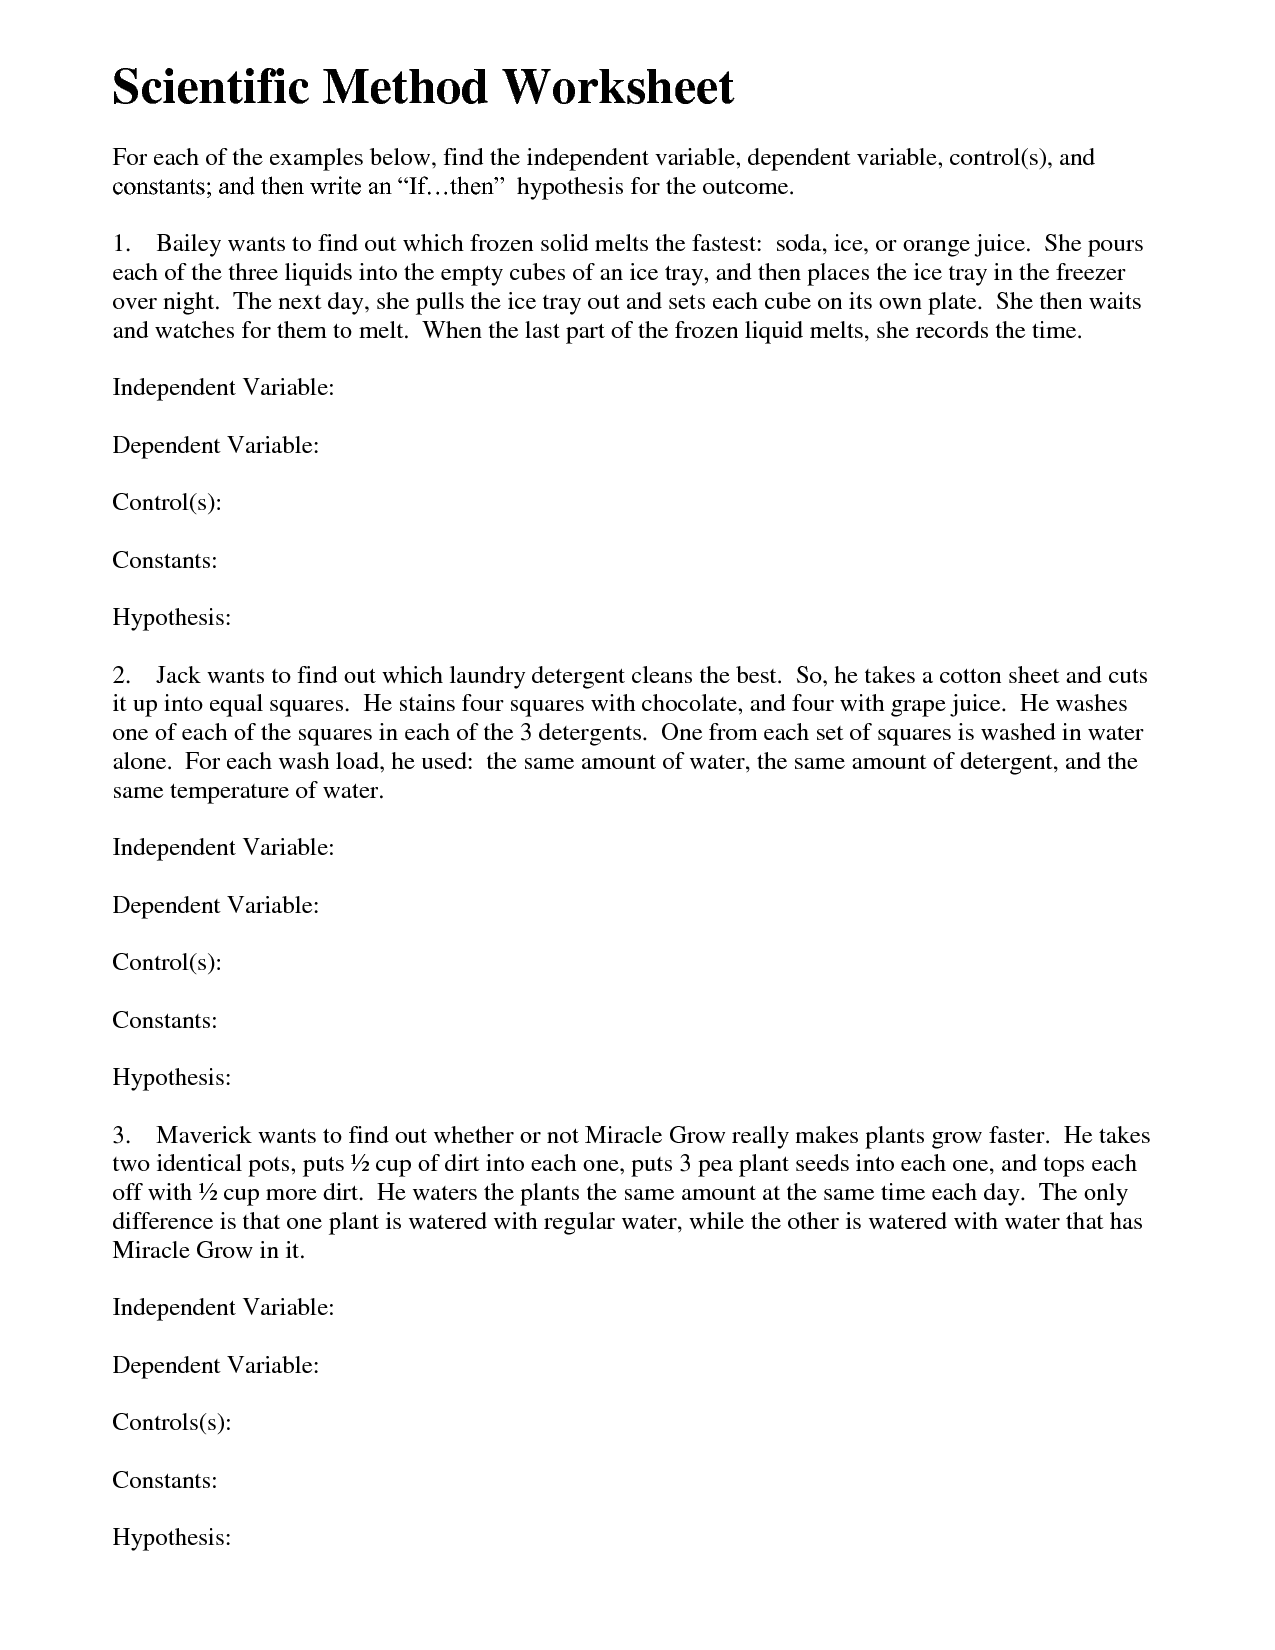 Worksheets, Scientific Method Simpsons Worksheet Answers And